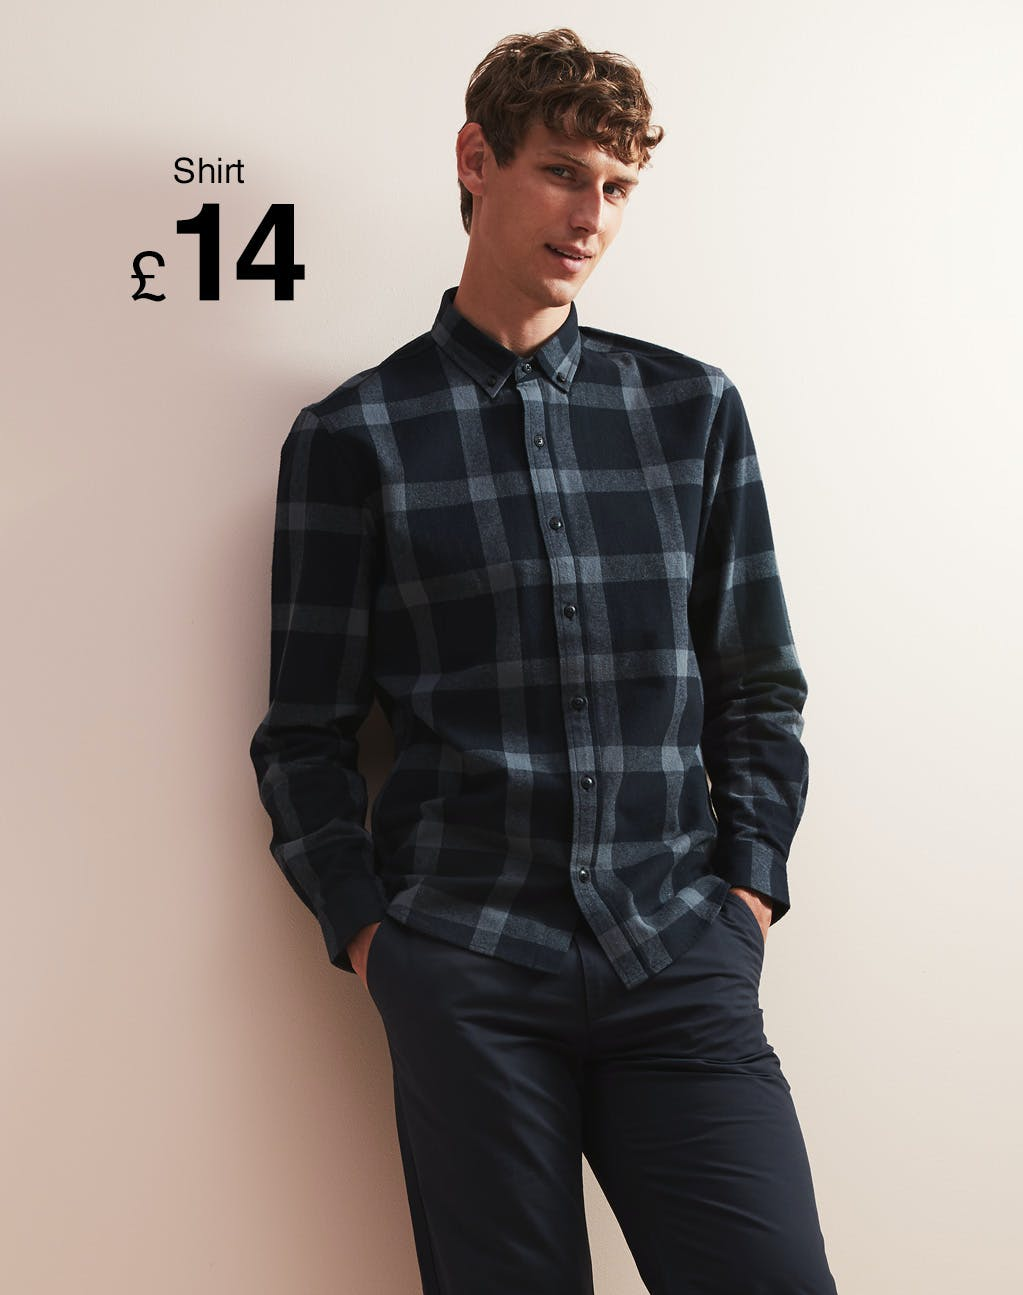 AllSaints Clothing Mens Women's Get Ahead Of The Game with AllSaints Start Christmas preparations with AllSaints Gift Guide and newest arrivals, from supersoft scarves and accessories to their iconic leather jackets.